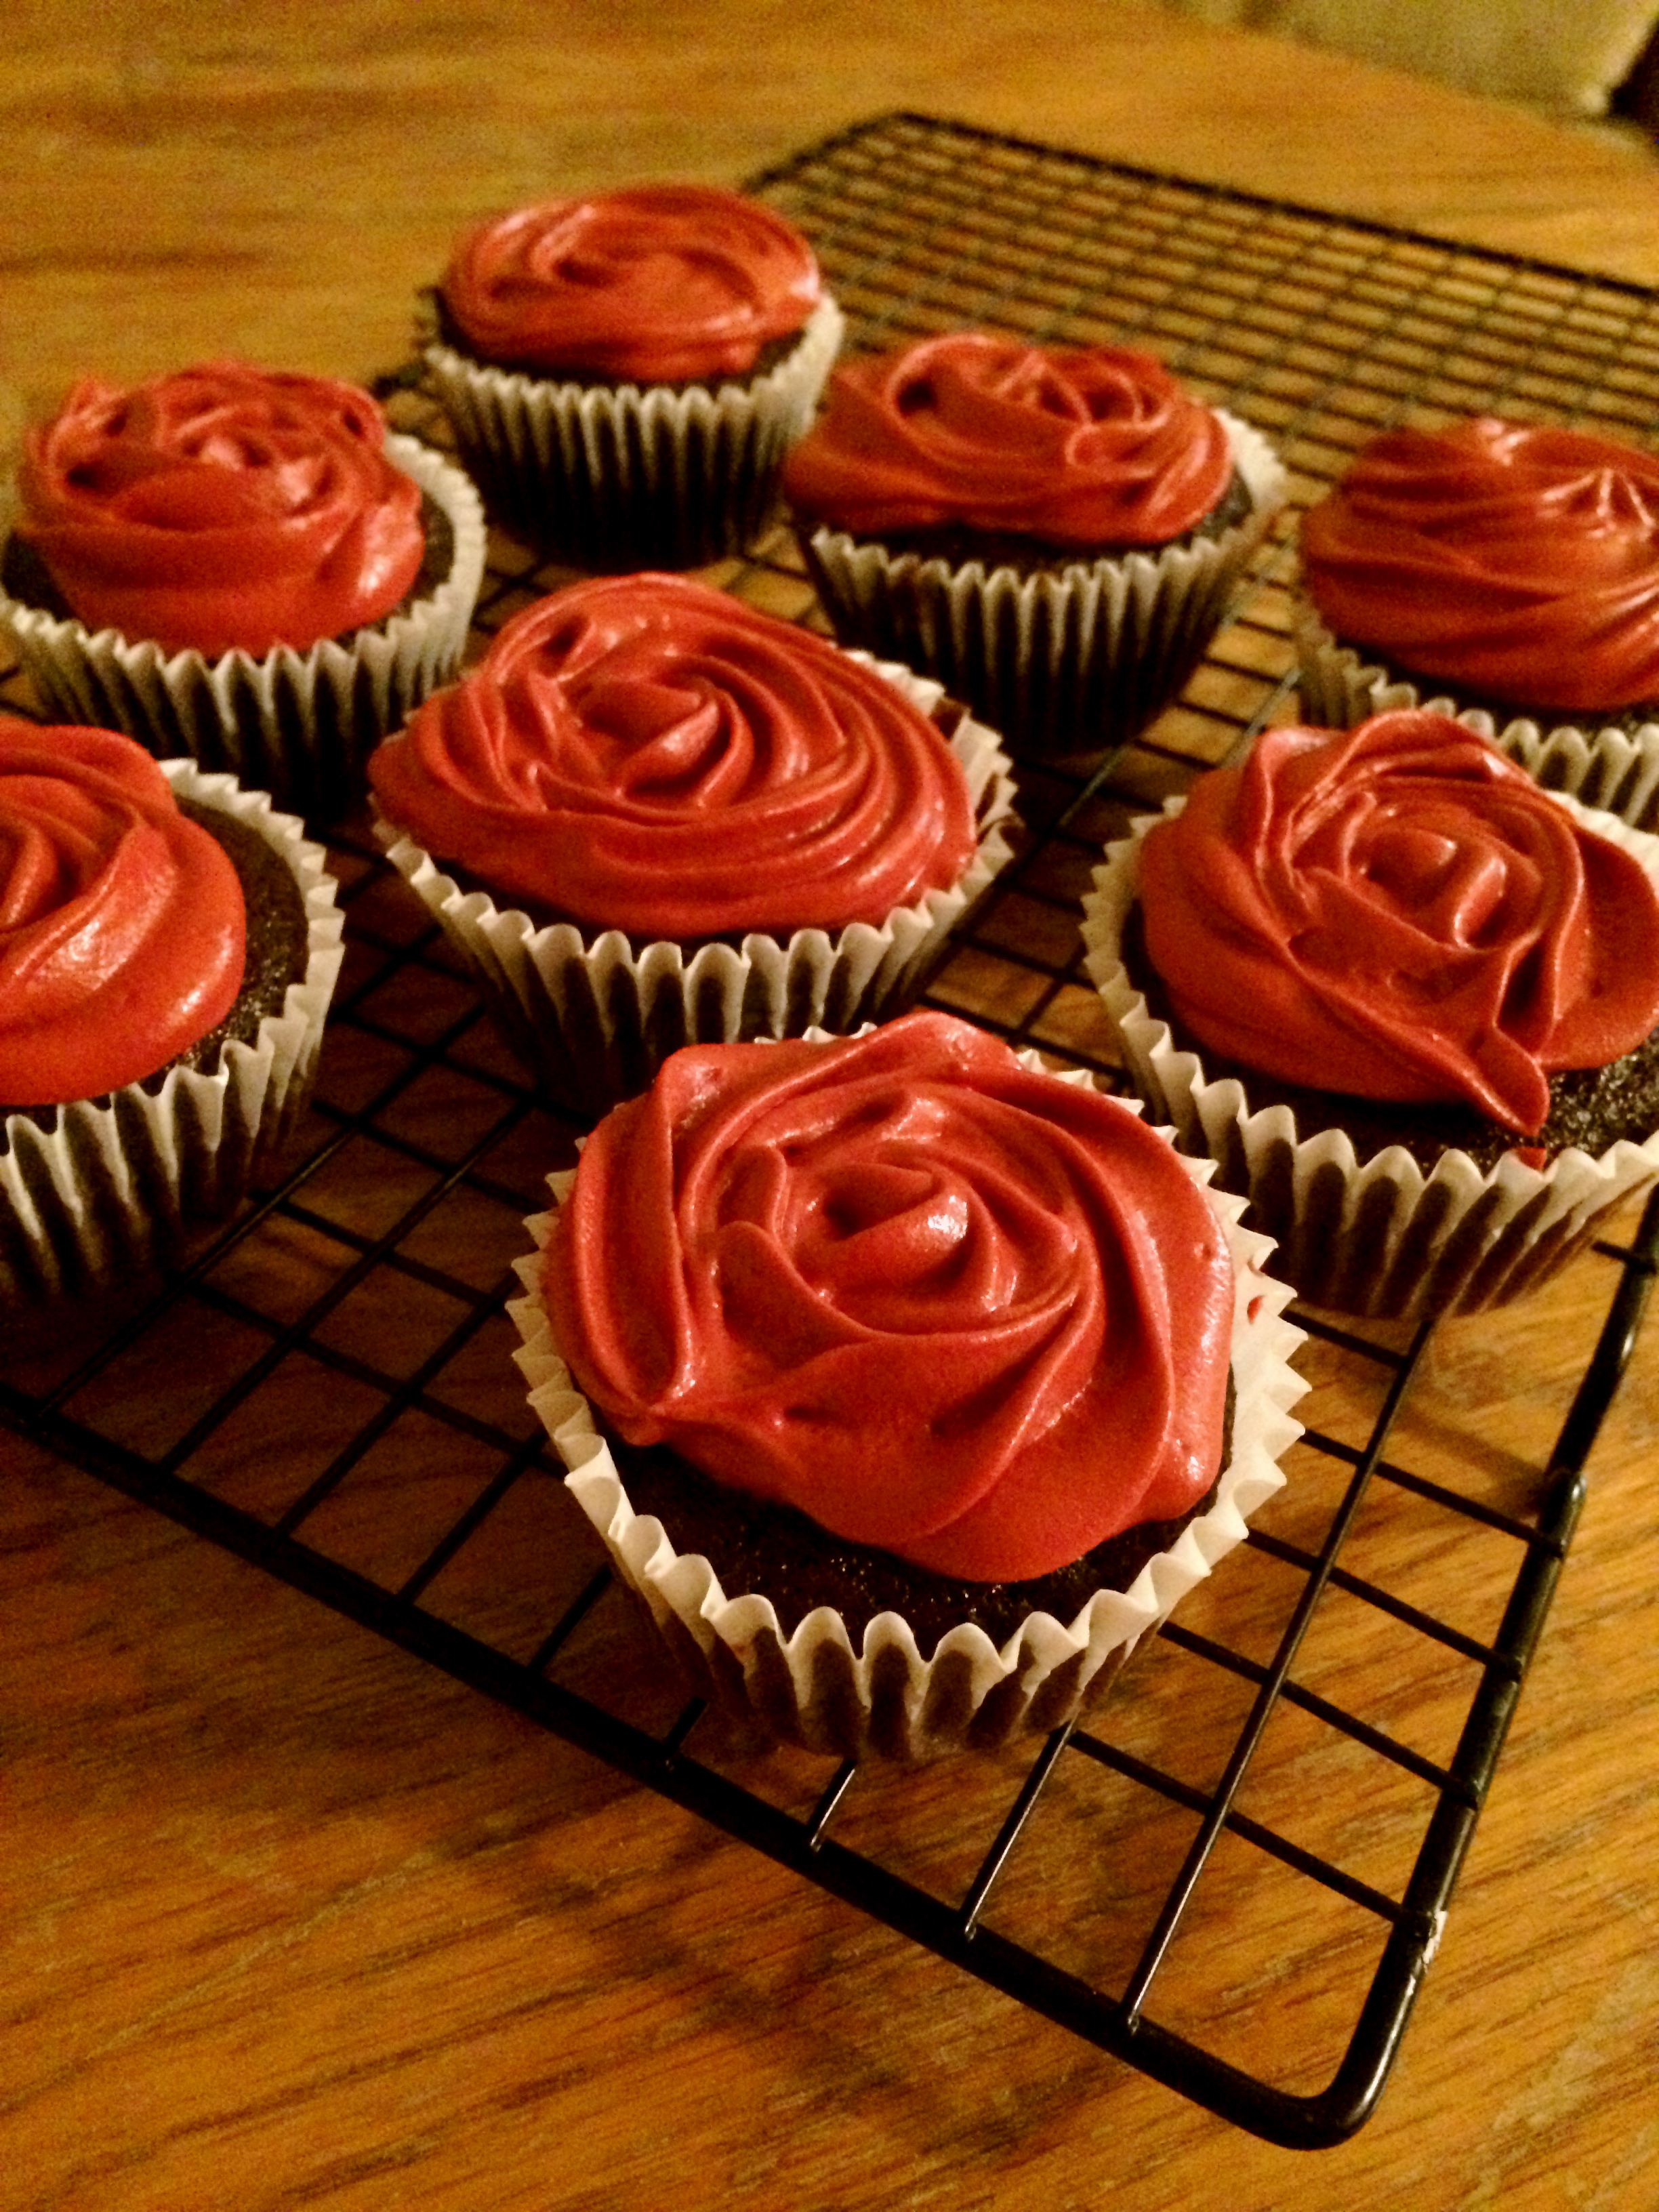 Bouquet or rose cupcakes